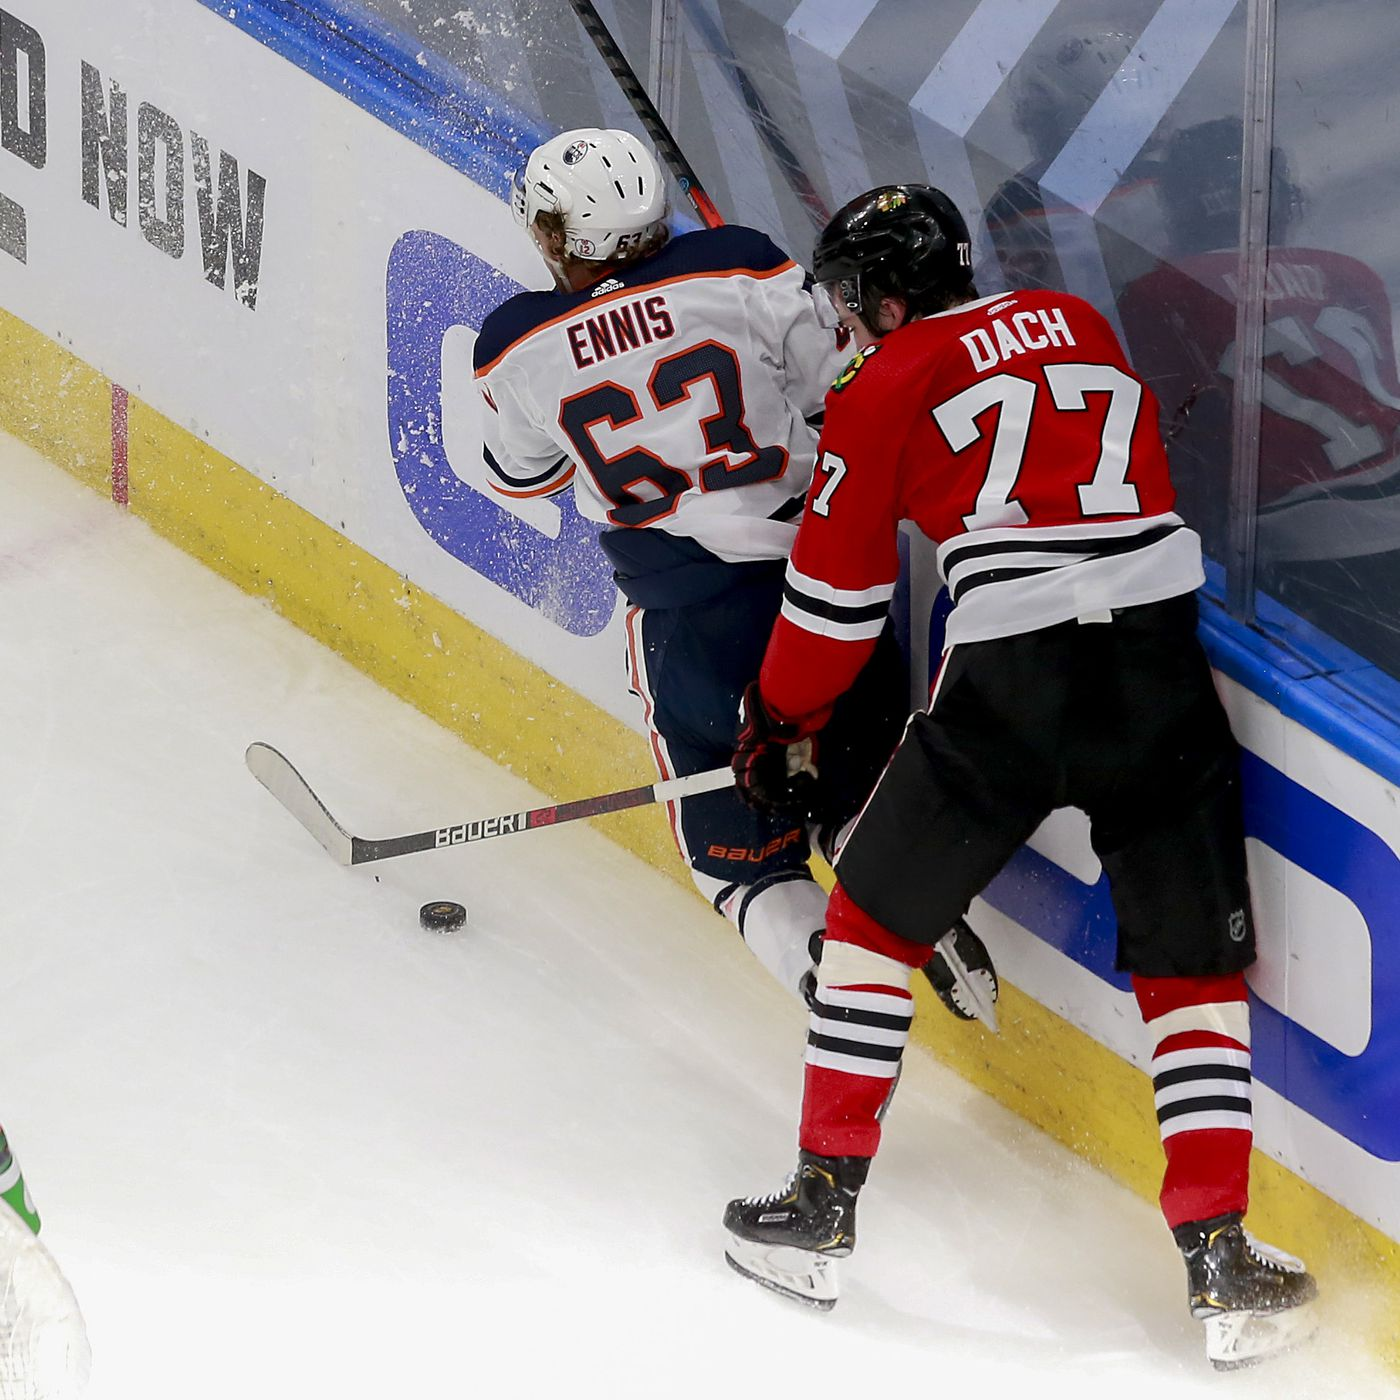 2020 Nhl Stanley Cup Qualifiers Tyler Ennis Out Indefinitely For Oilers Won T Play Vs Blackhawks Second City Hockey